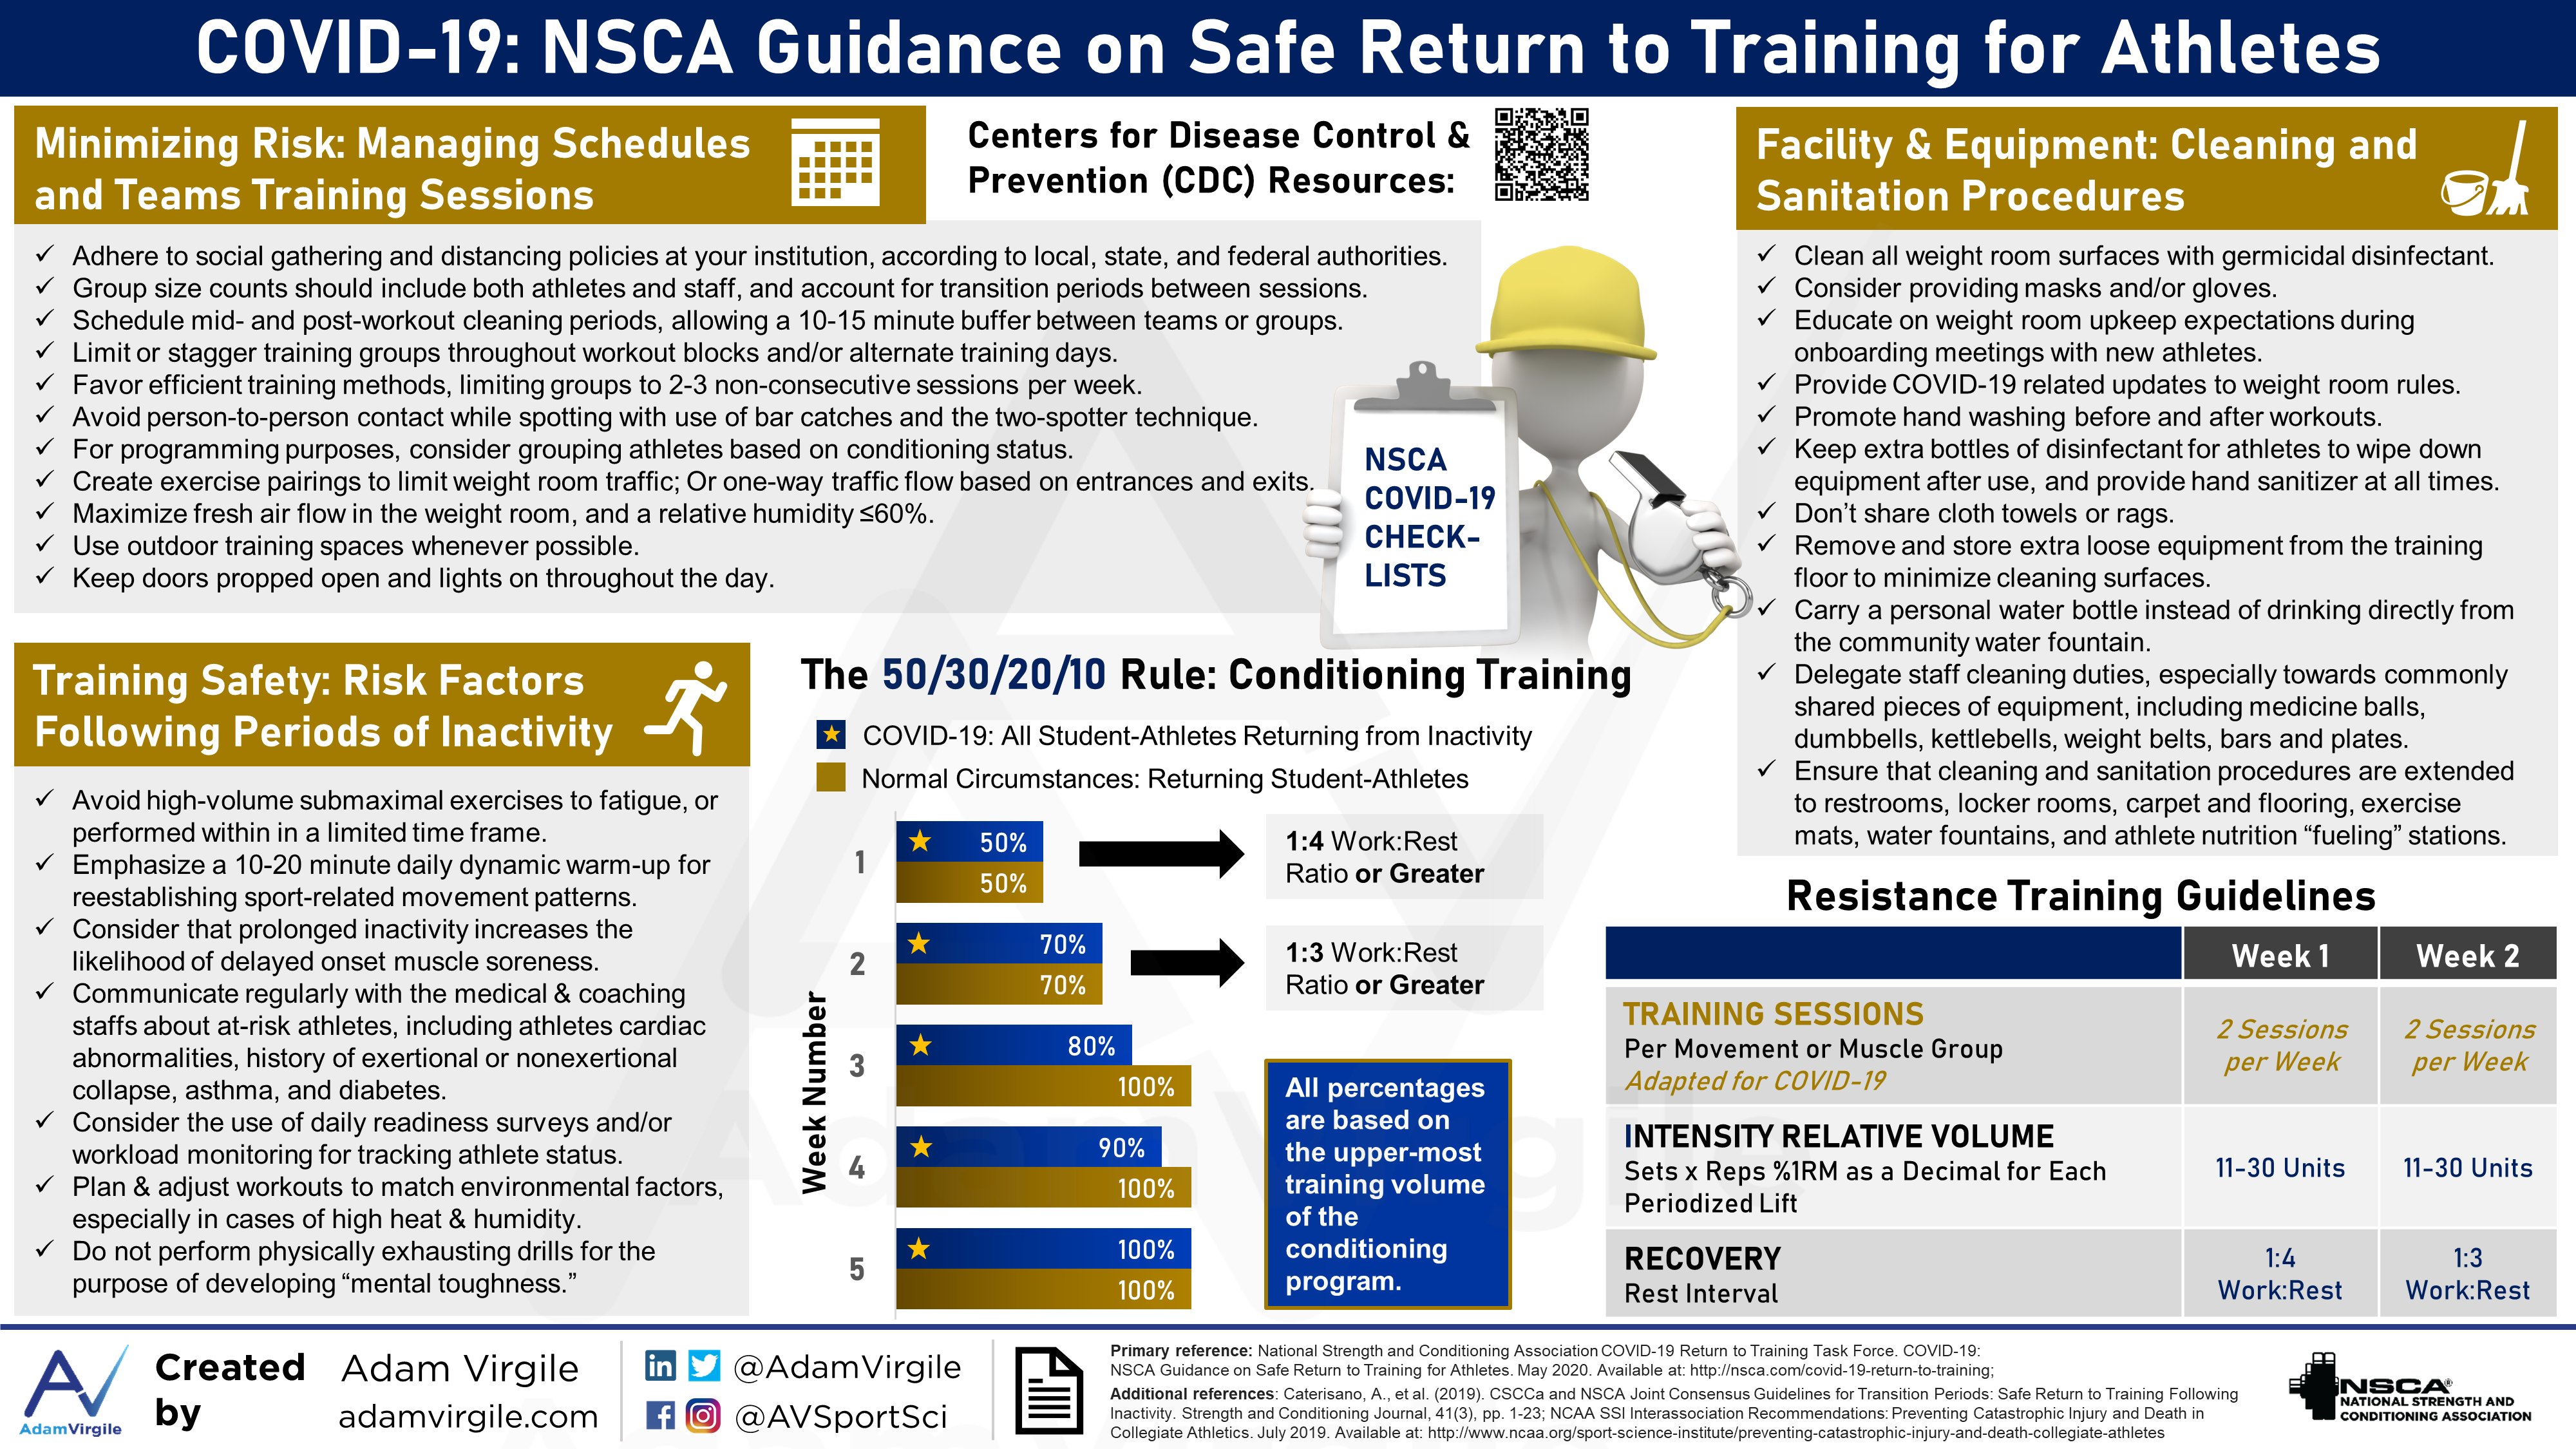 COVID-19: NSCA Guidance on Safe Return to Training for Athletes.